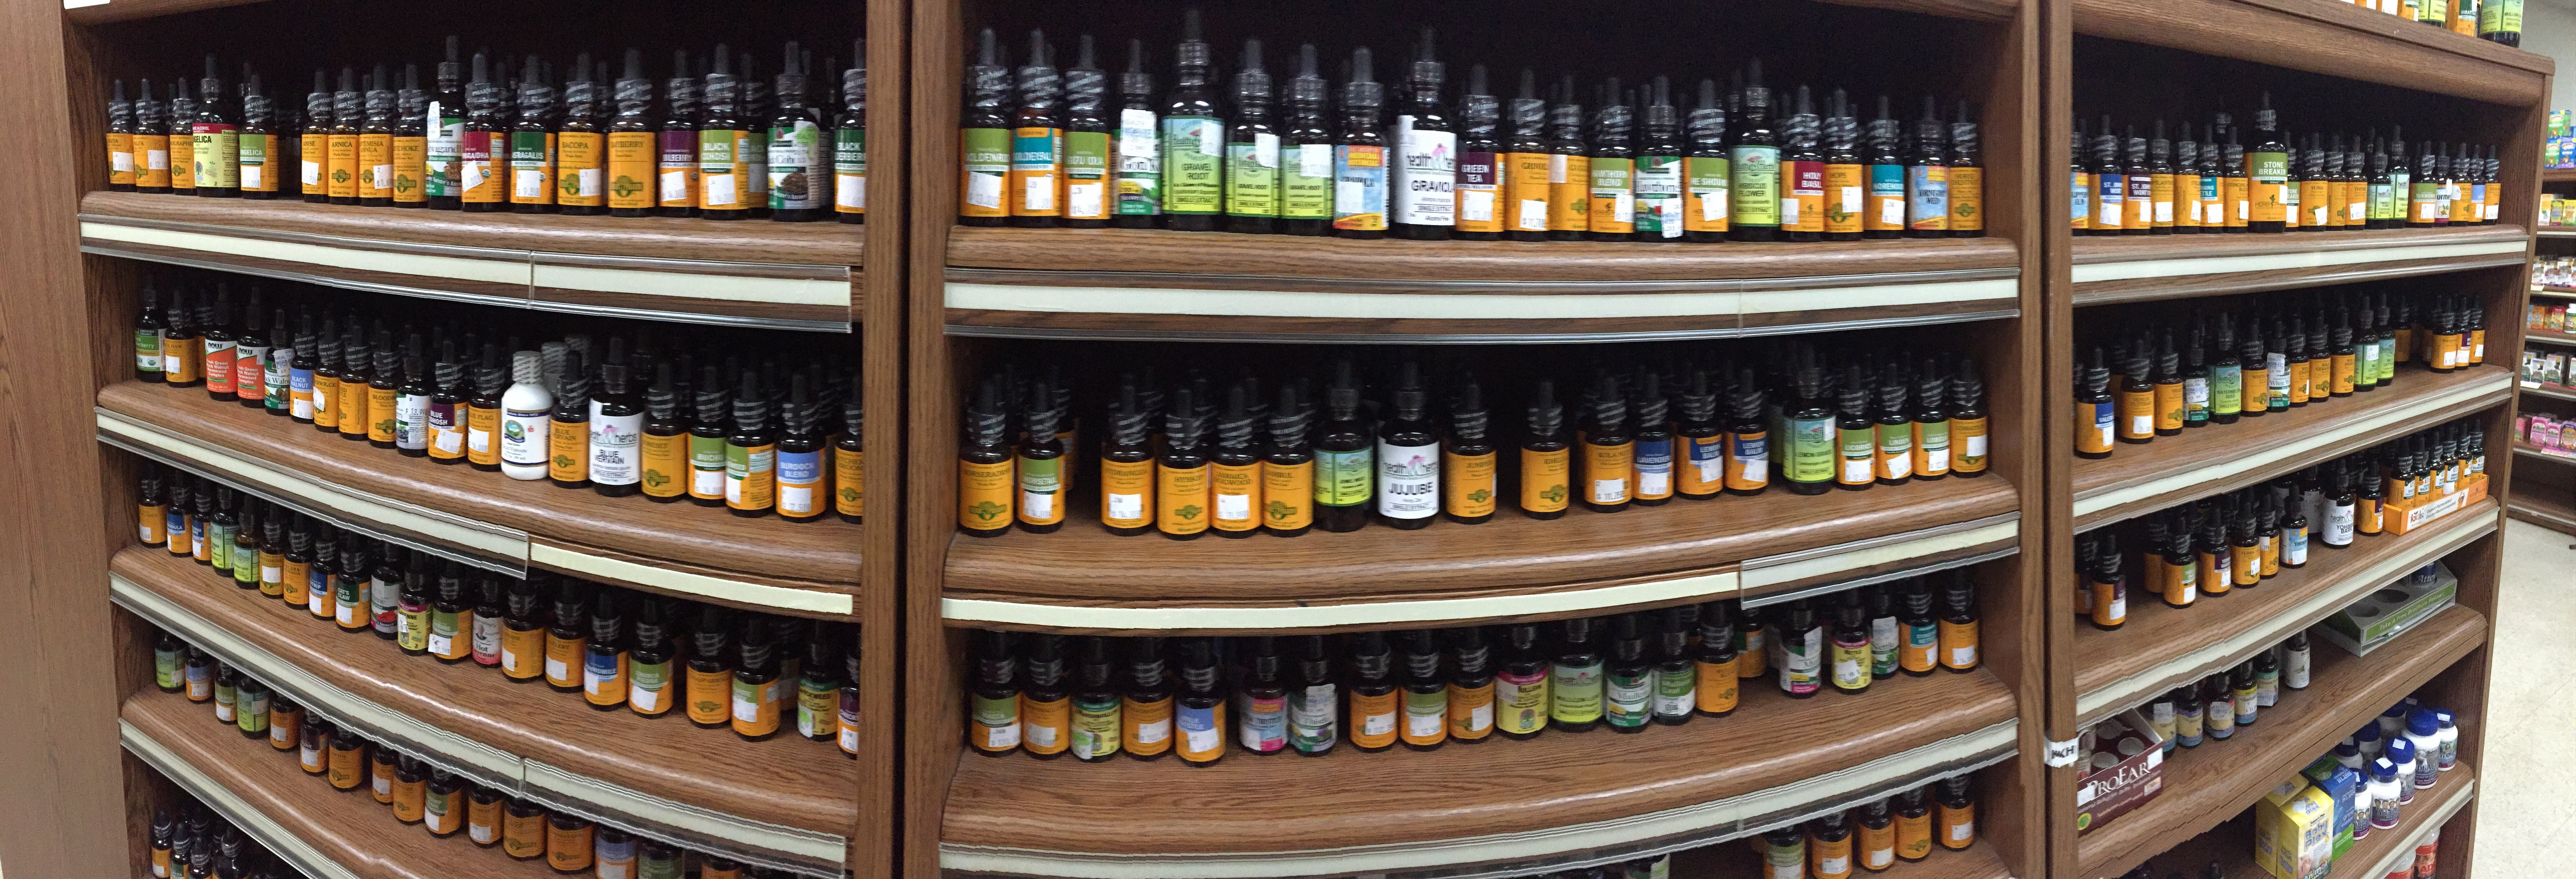 Essential Oils, Herbal Supplements, Organic Foods - Montgomery, AL